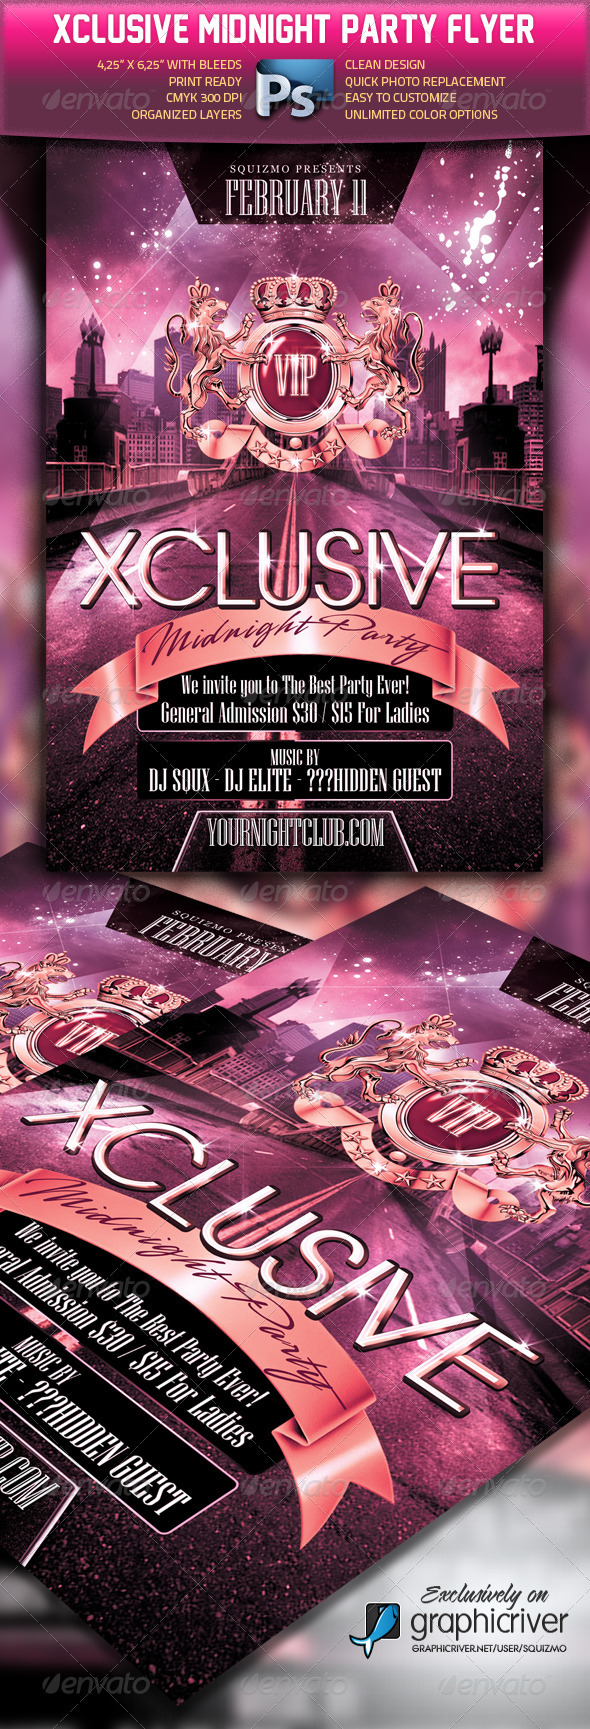 Graphic River Xclusive Midnight Party Flyer Print Templates -  Flyers  Events  Clubs & Parties 1047841